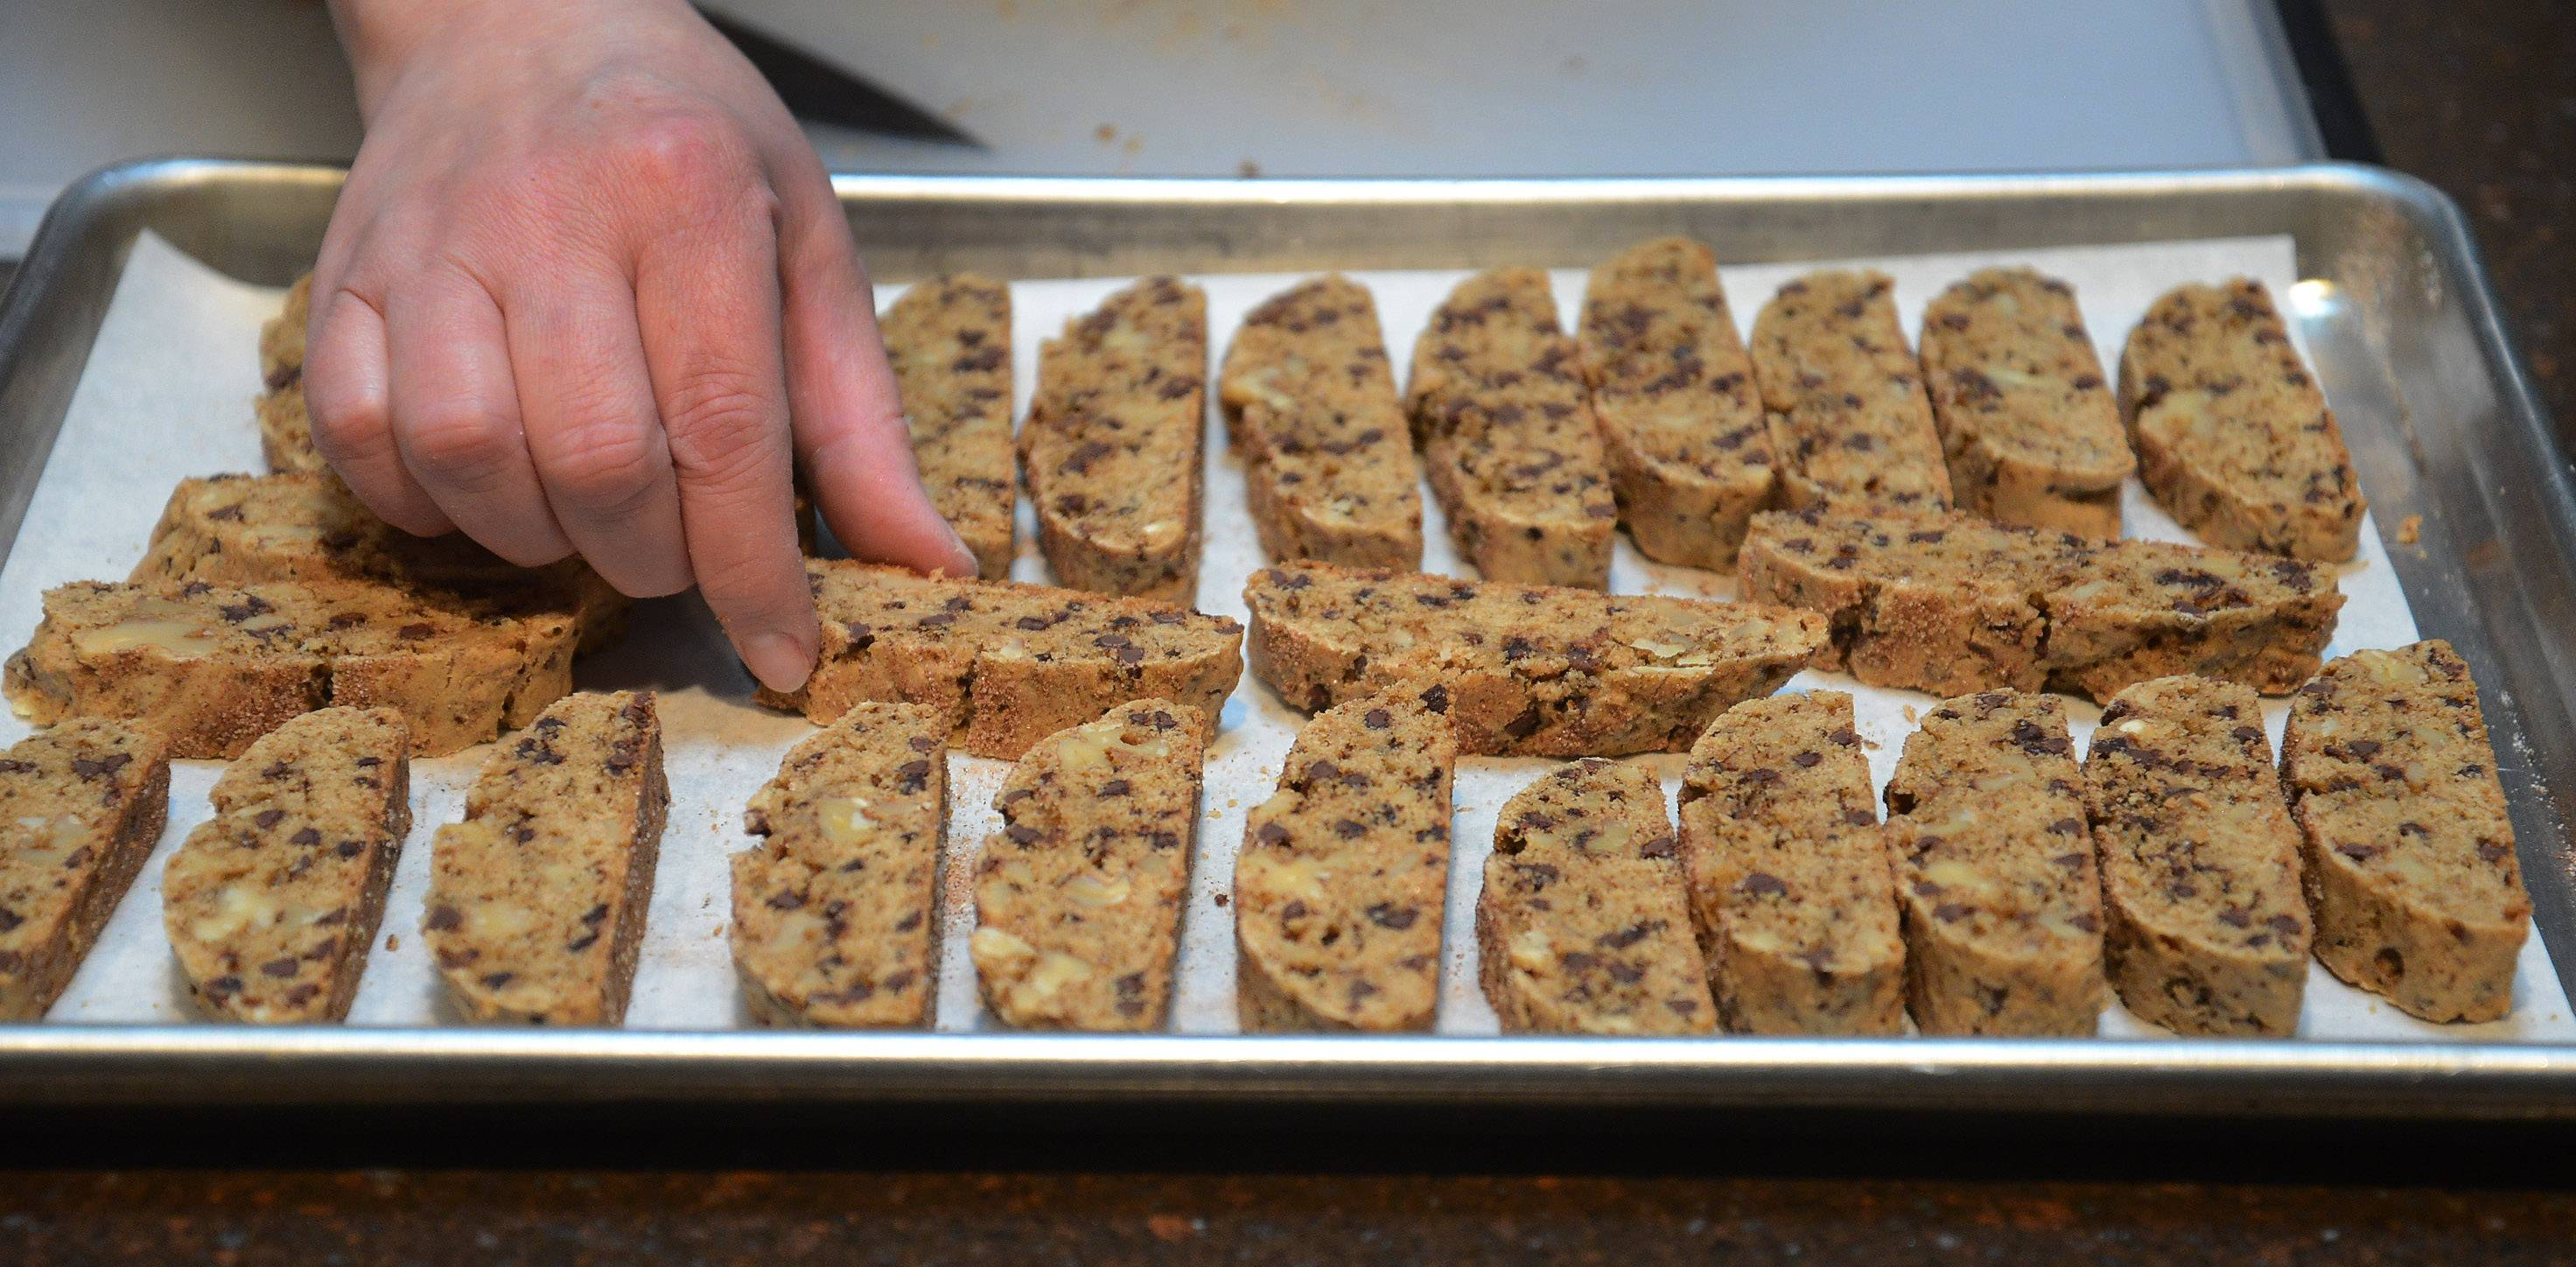 Marie DeMar gives her sliced chocolate chip and walnut biscotti a second round in the oven to make them crisp and ready for dunking.